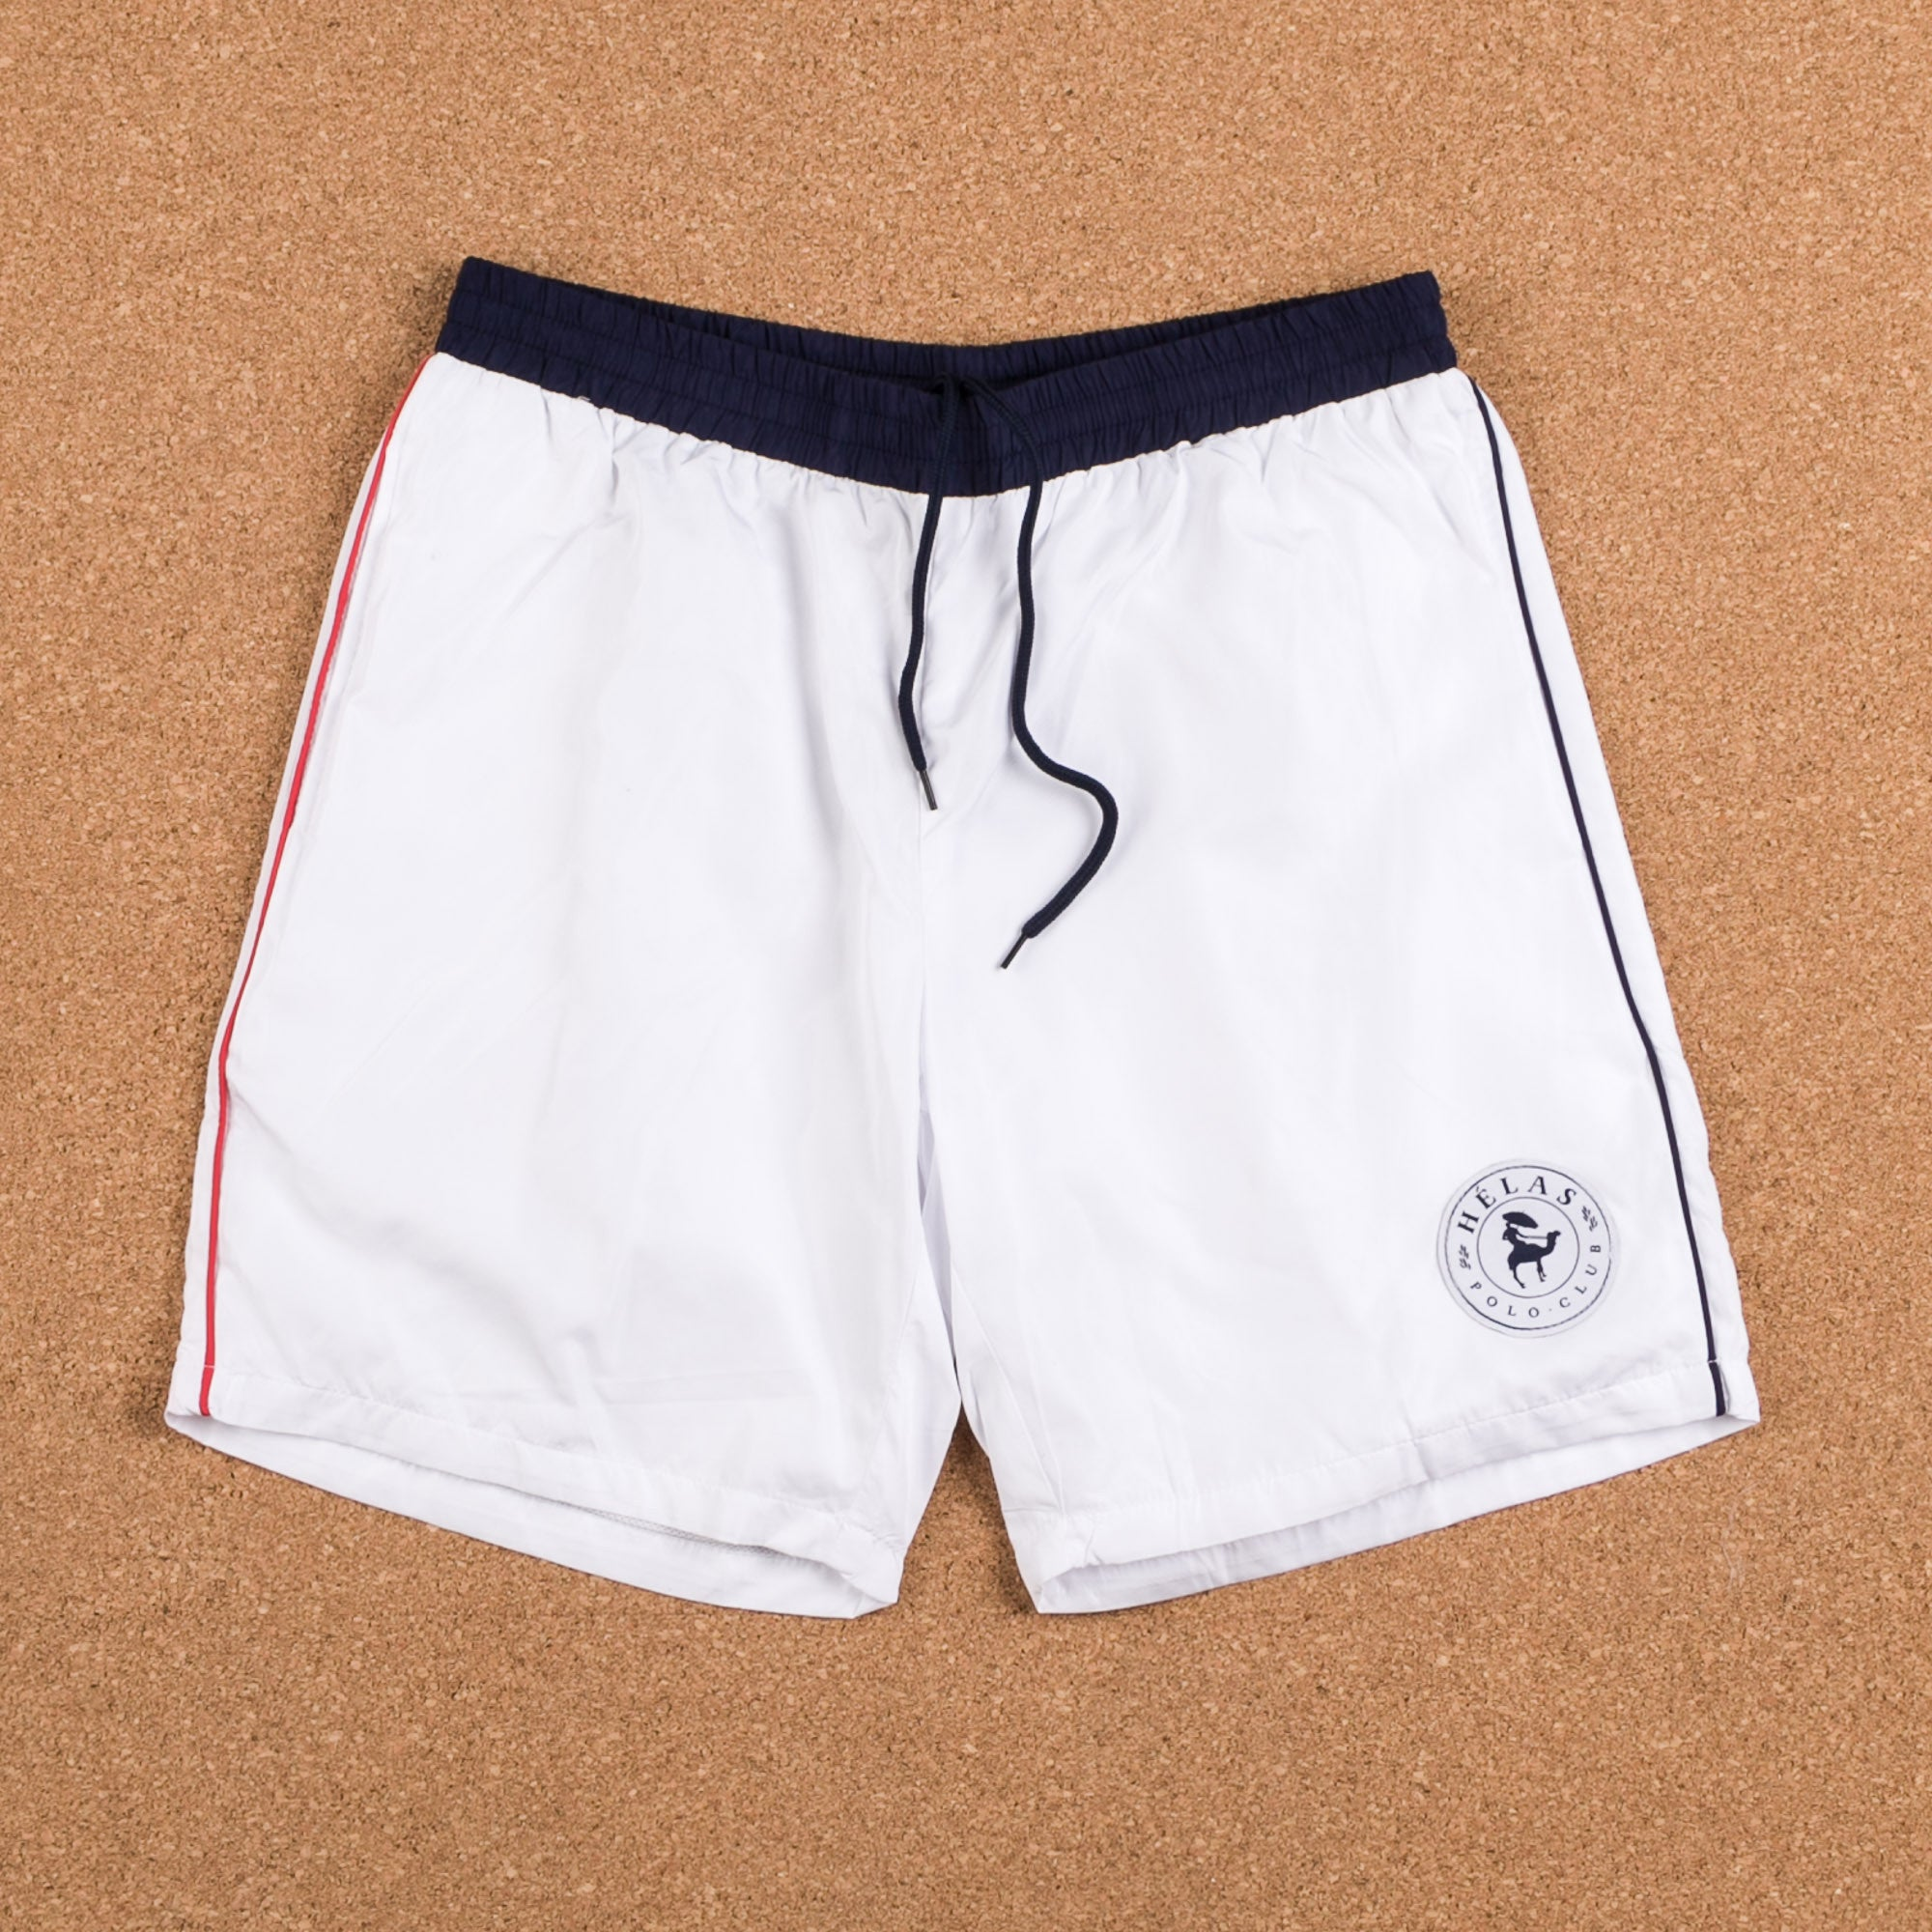 Helas Polo Club Shorts - White